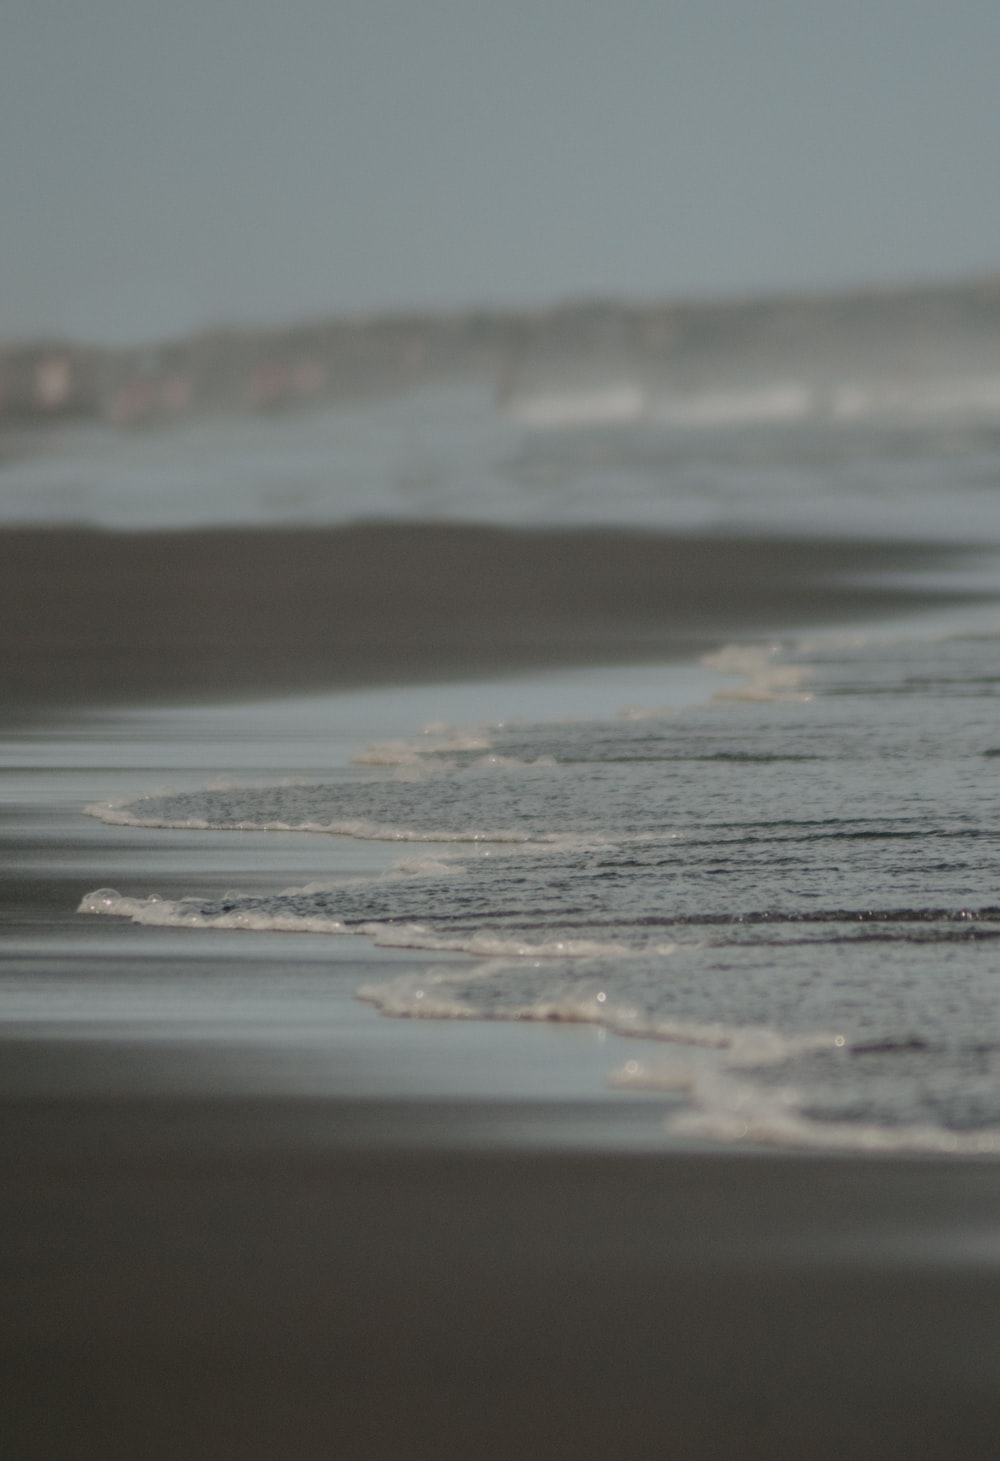 seashore on selective focus photography